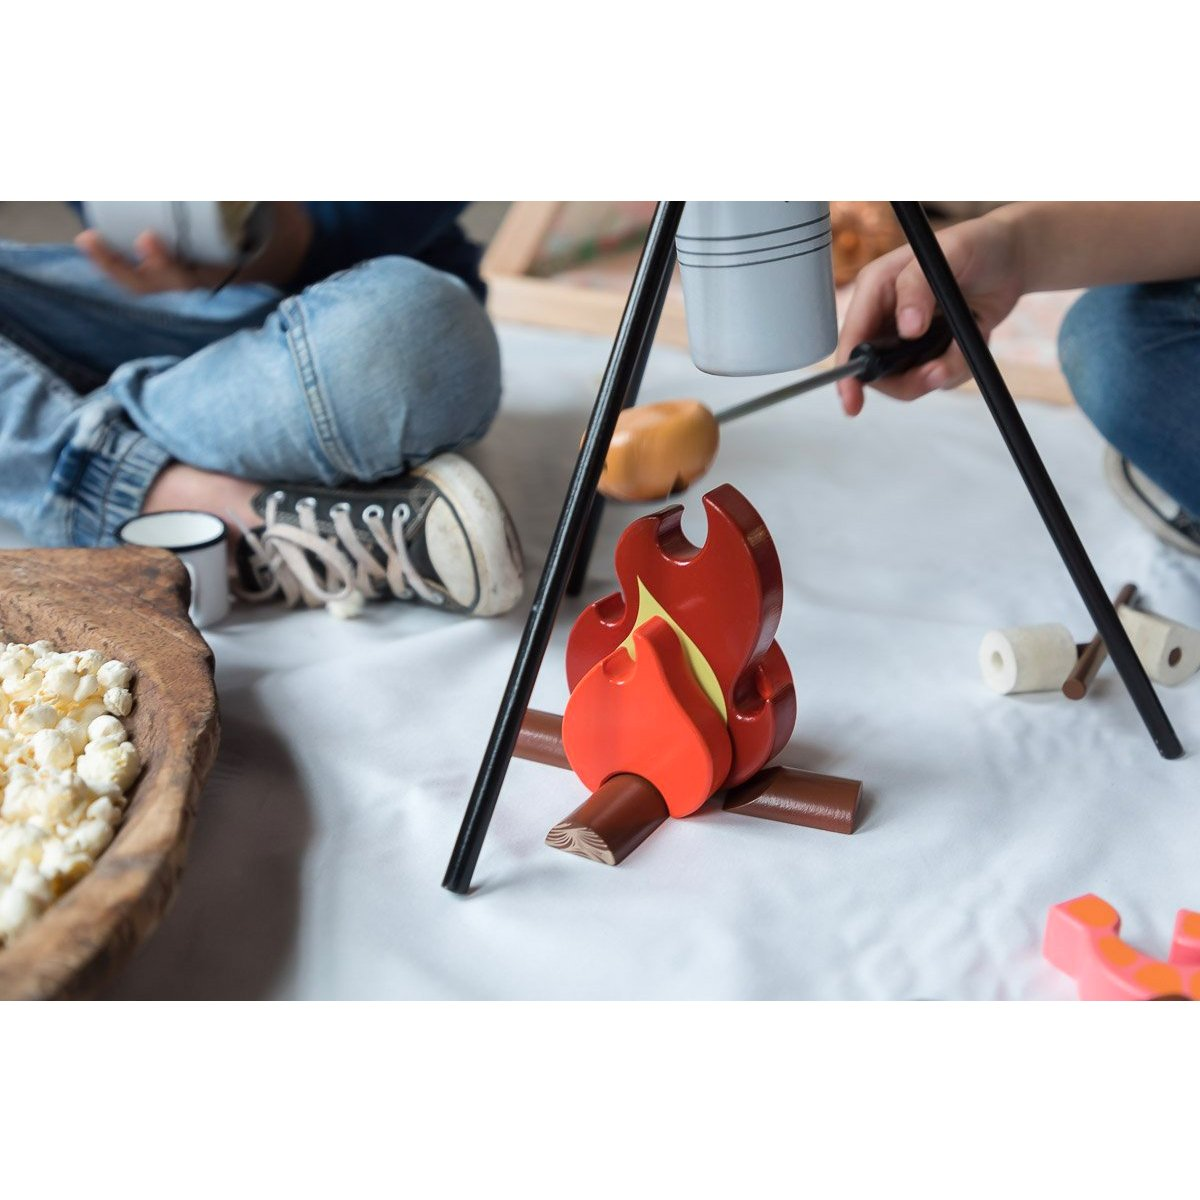 Make Me Iconic Campfire Make Me Iconic Activity Toys at Little Earth Nest Eco Shop